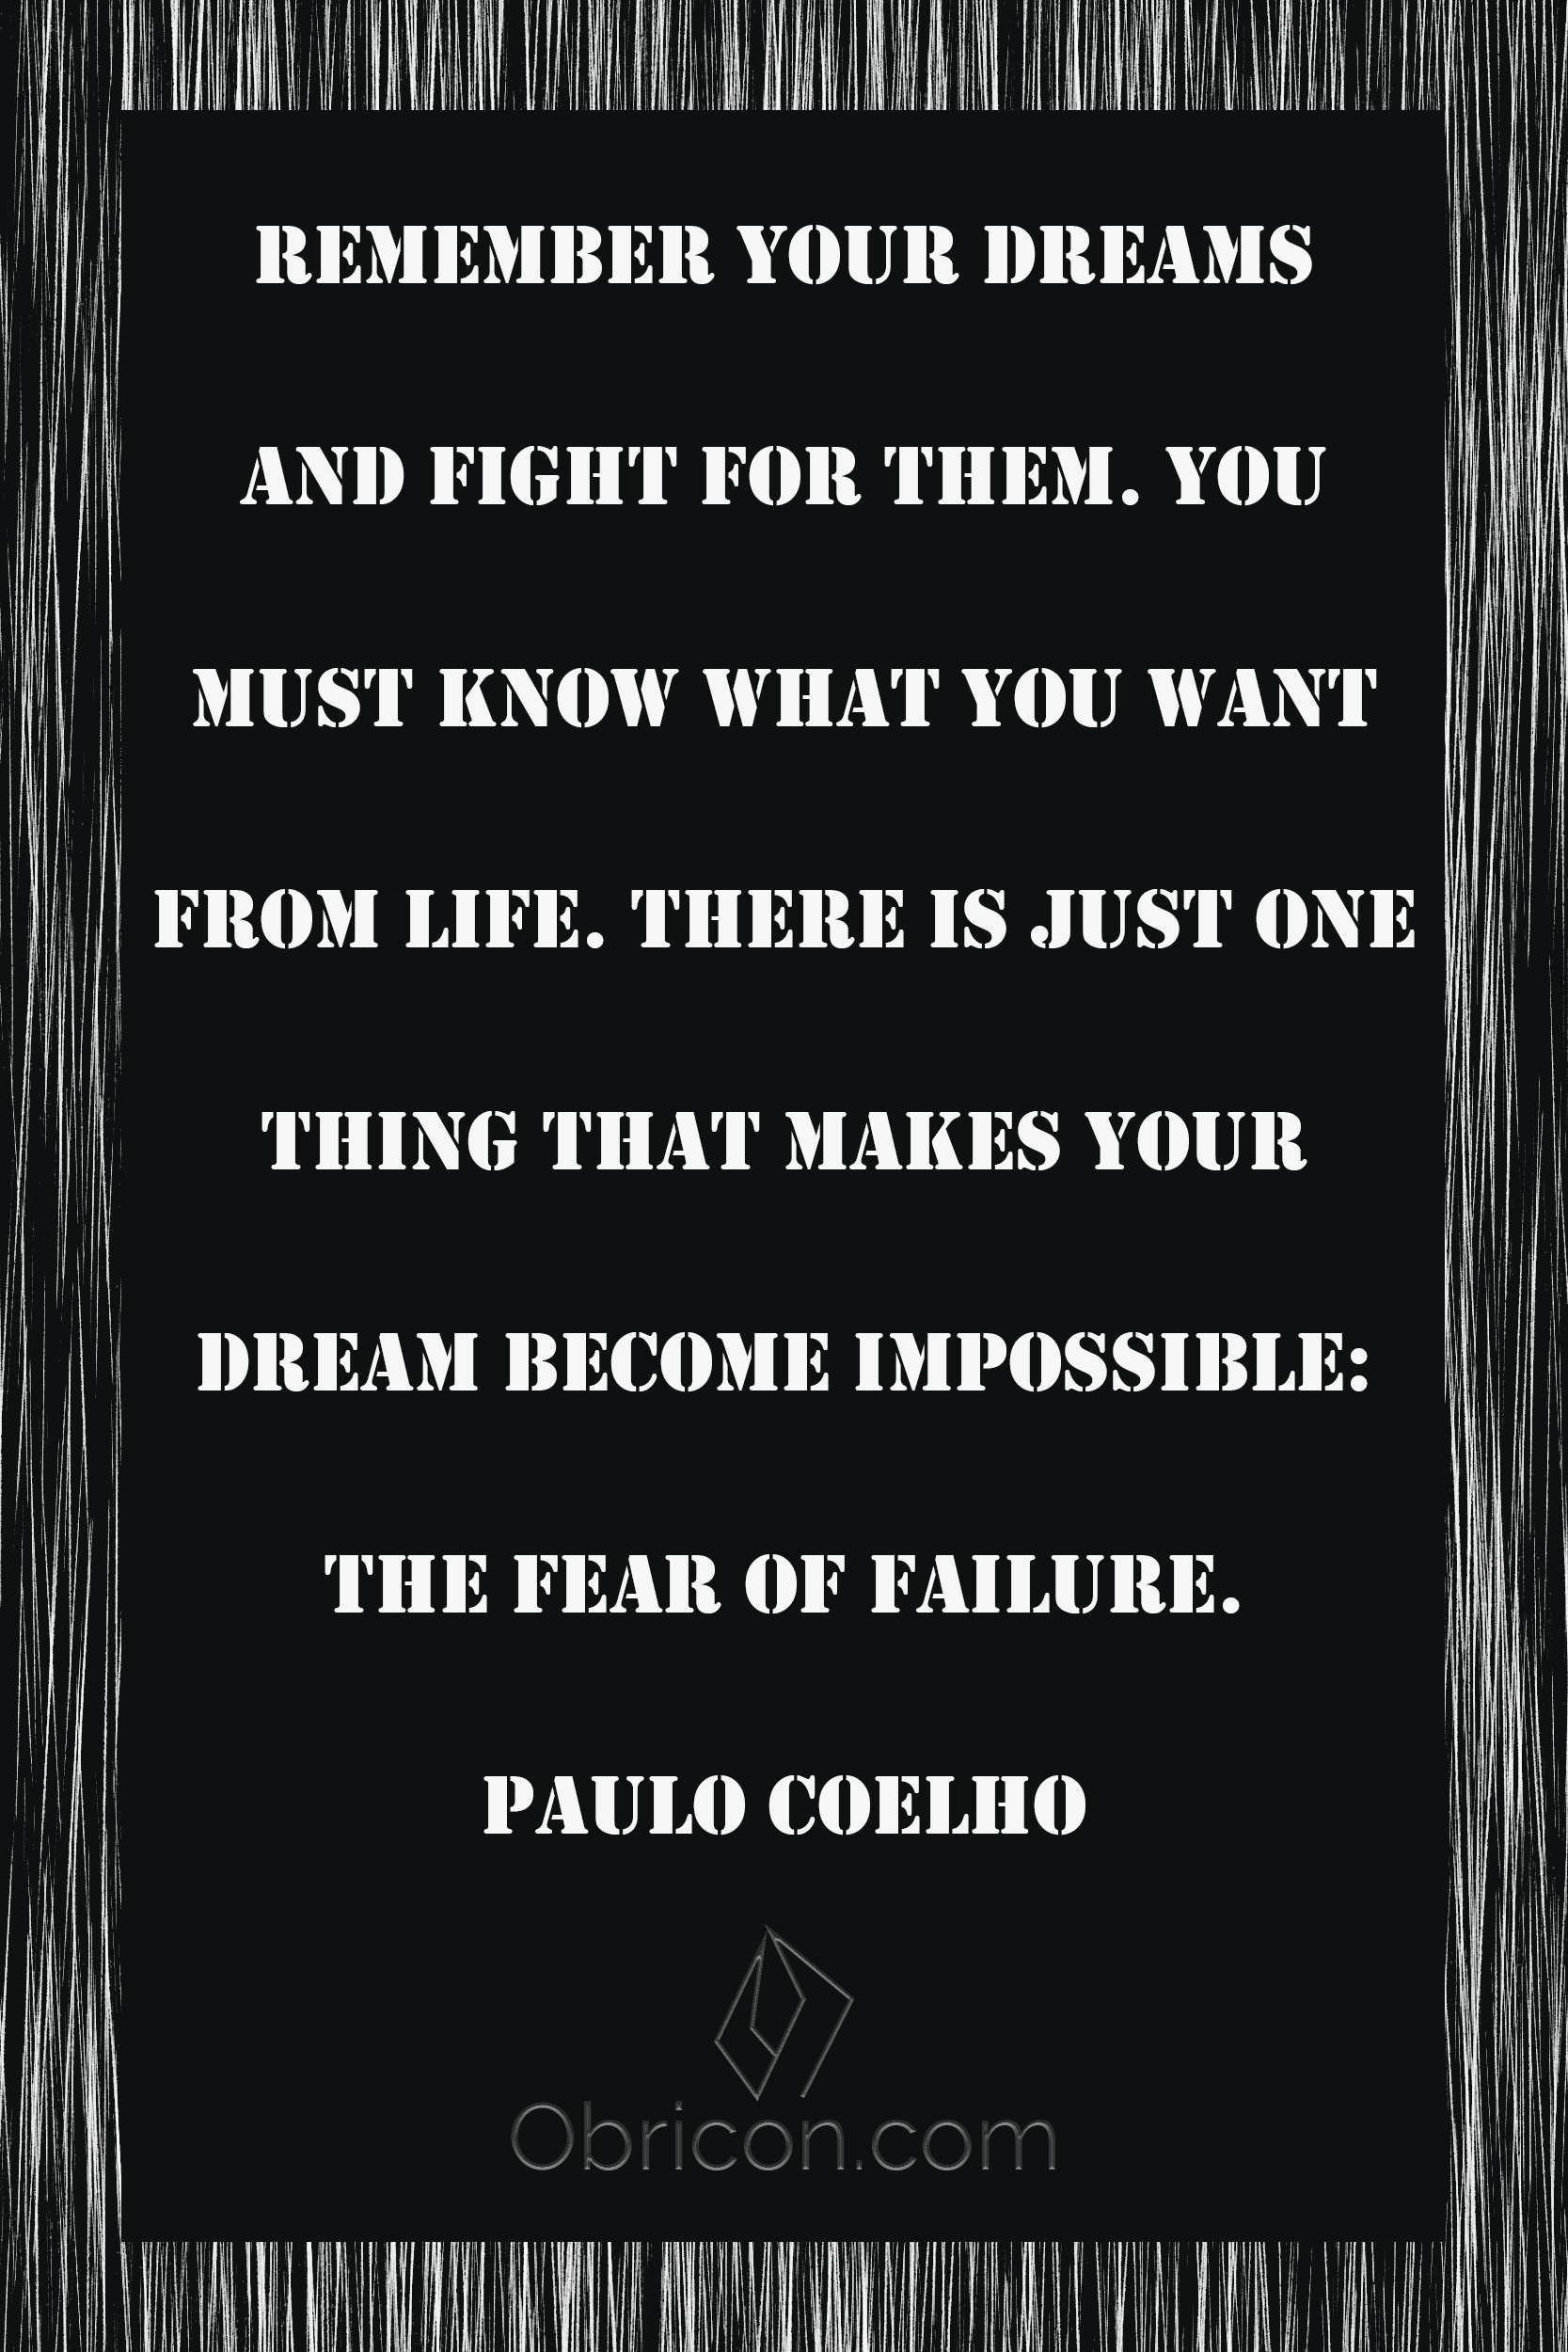 Remember your dreams and fight for them. You must know what you want from life. There is just one thing that makes your dream become impossible the fear of failure. Paulo Coelho.png